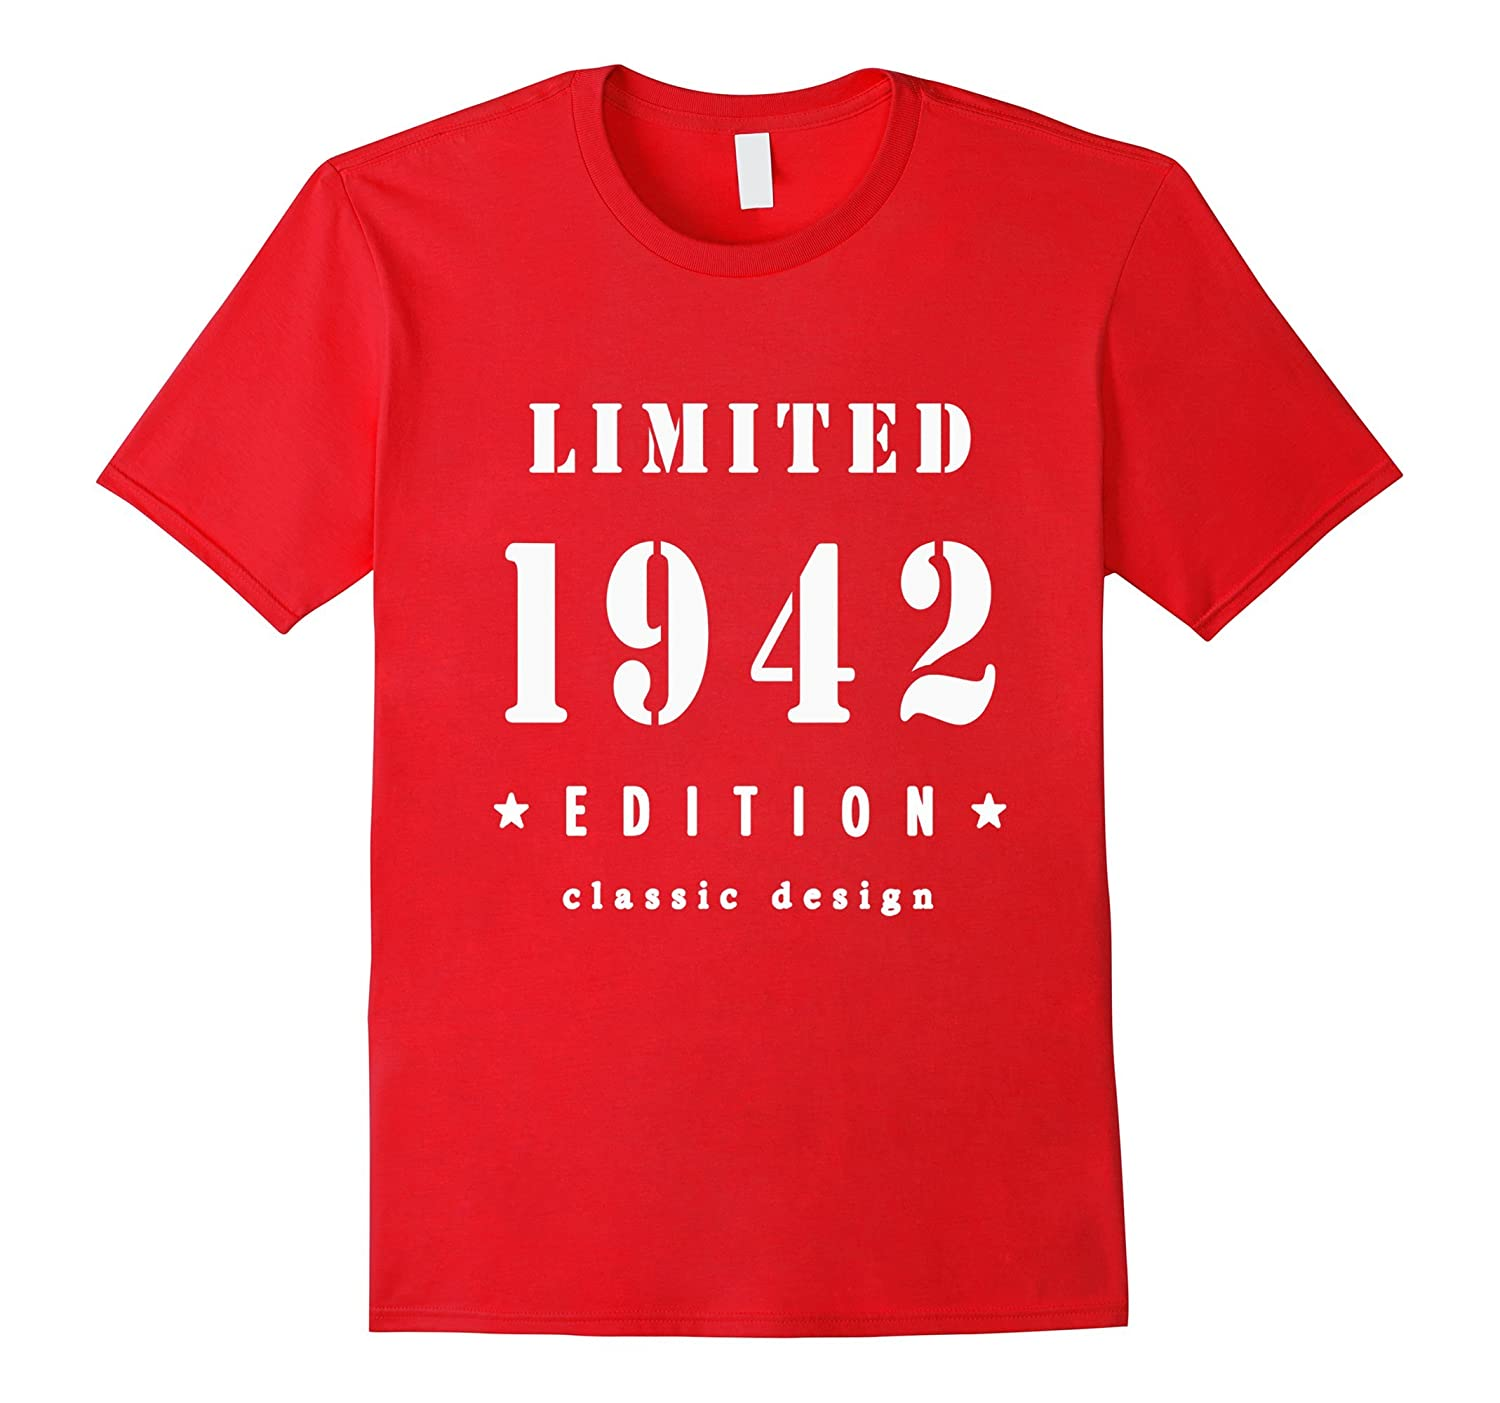 75th Birthday T Shirt Vintage Made In 1942 Gift Ideas Guys PL Polozatee